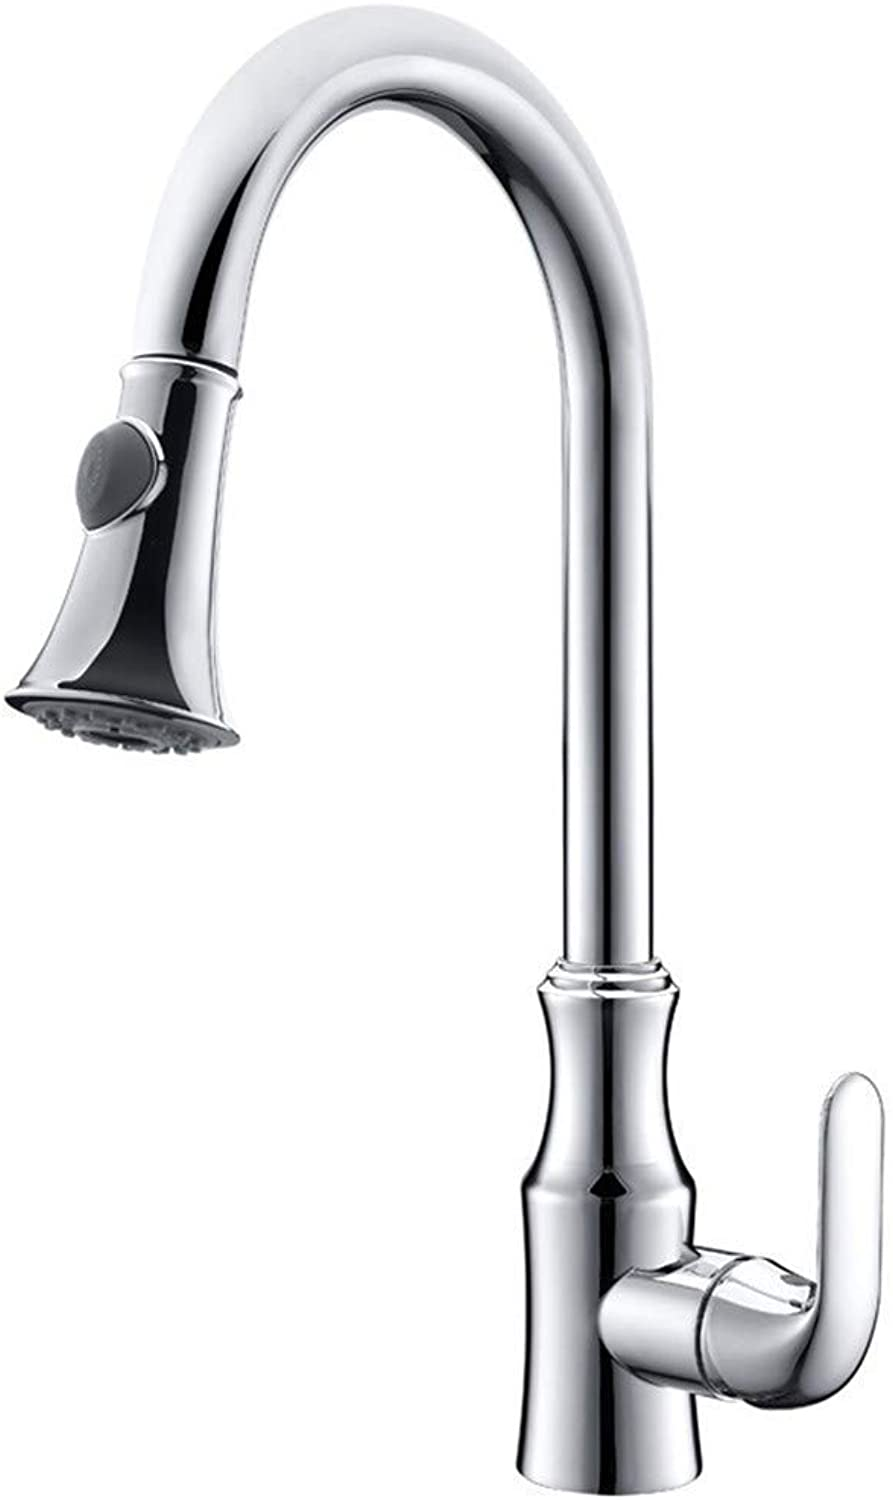 Oevina Taps Pull-Out Kitchen Faucet Sink Kitchen Pull Faucet